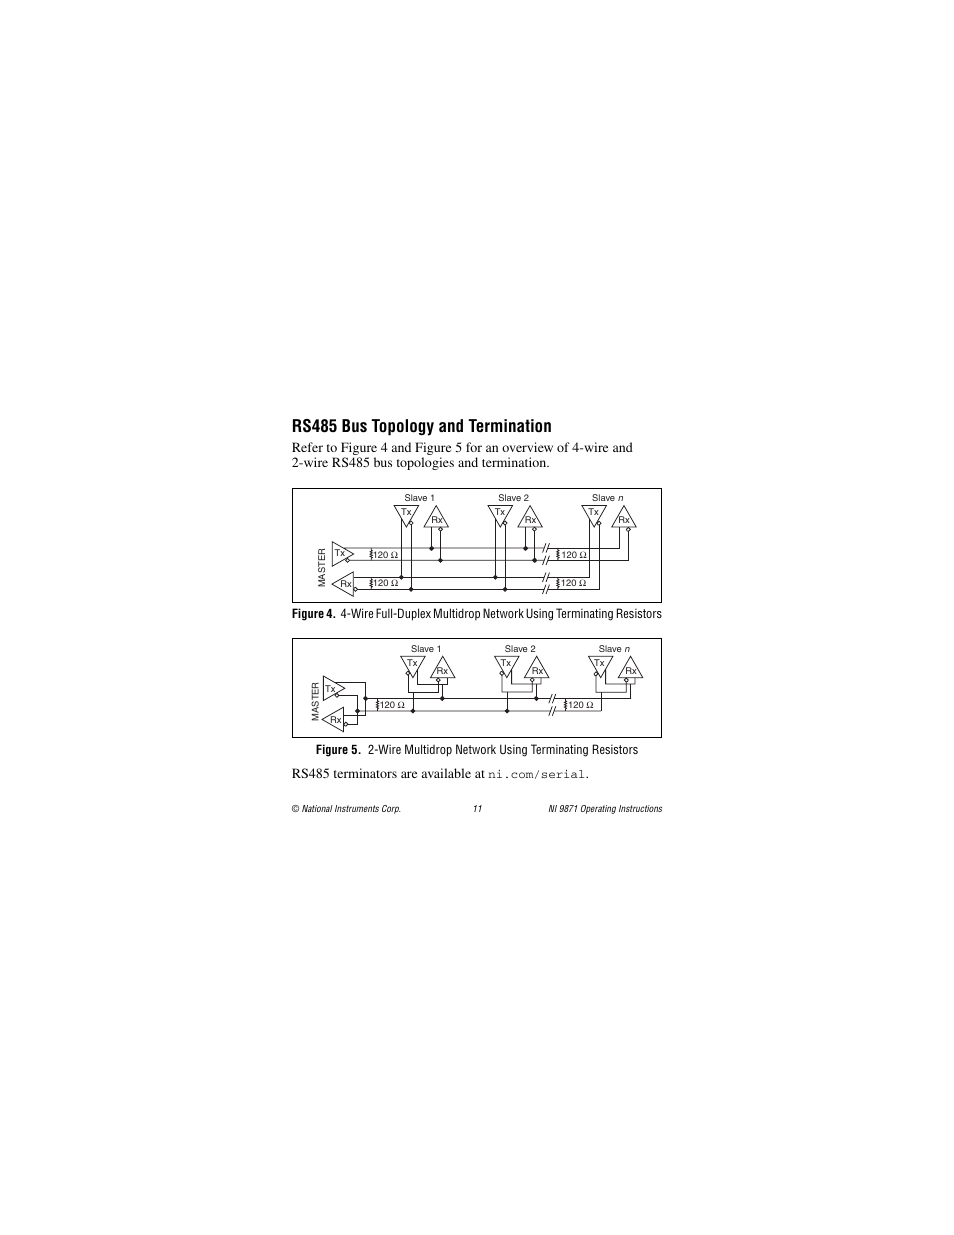 Rs485 Bus Topology And Termination Terminators Are Available 2 Wire Diagram At National Instruments User Manual Page 11 24